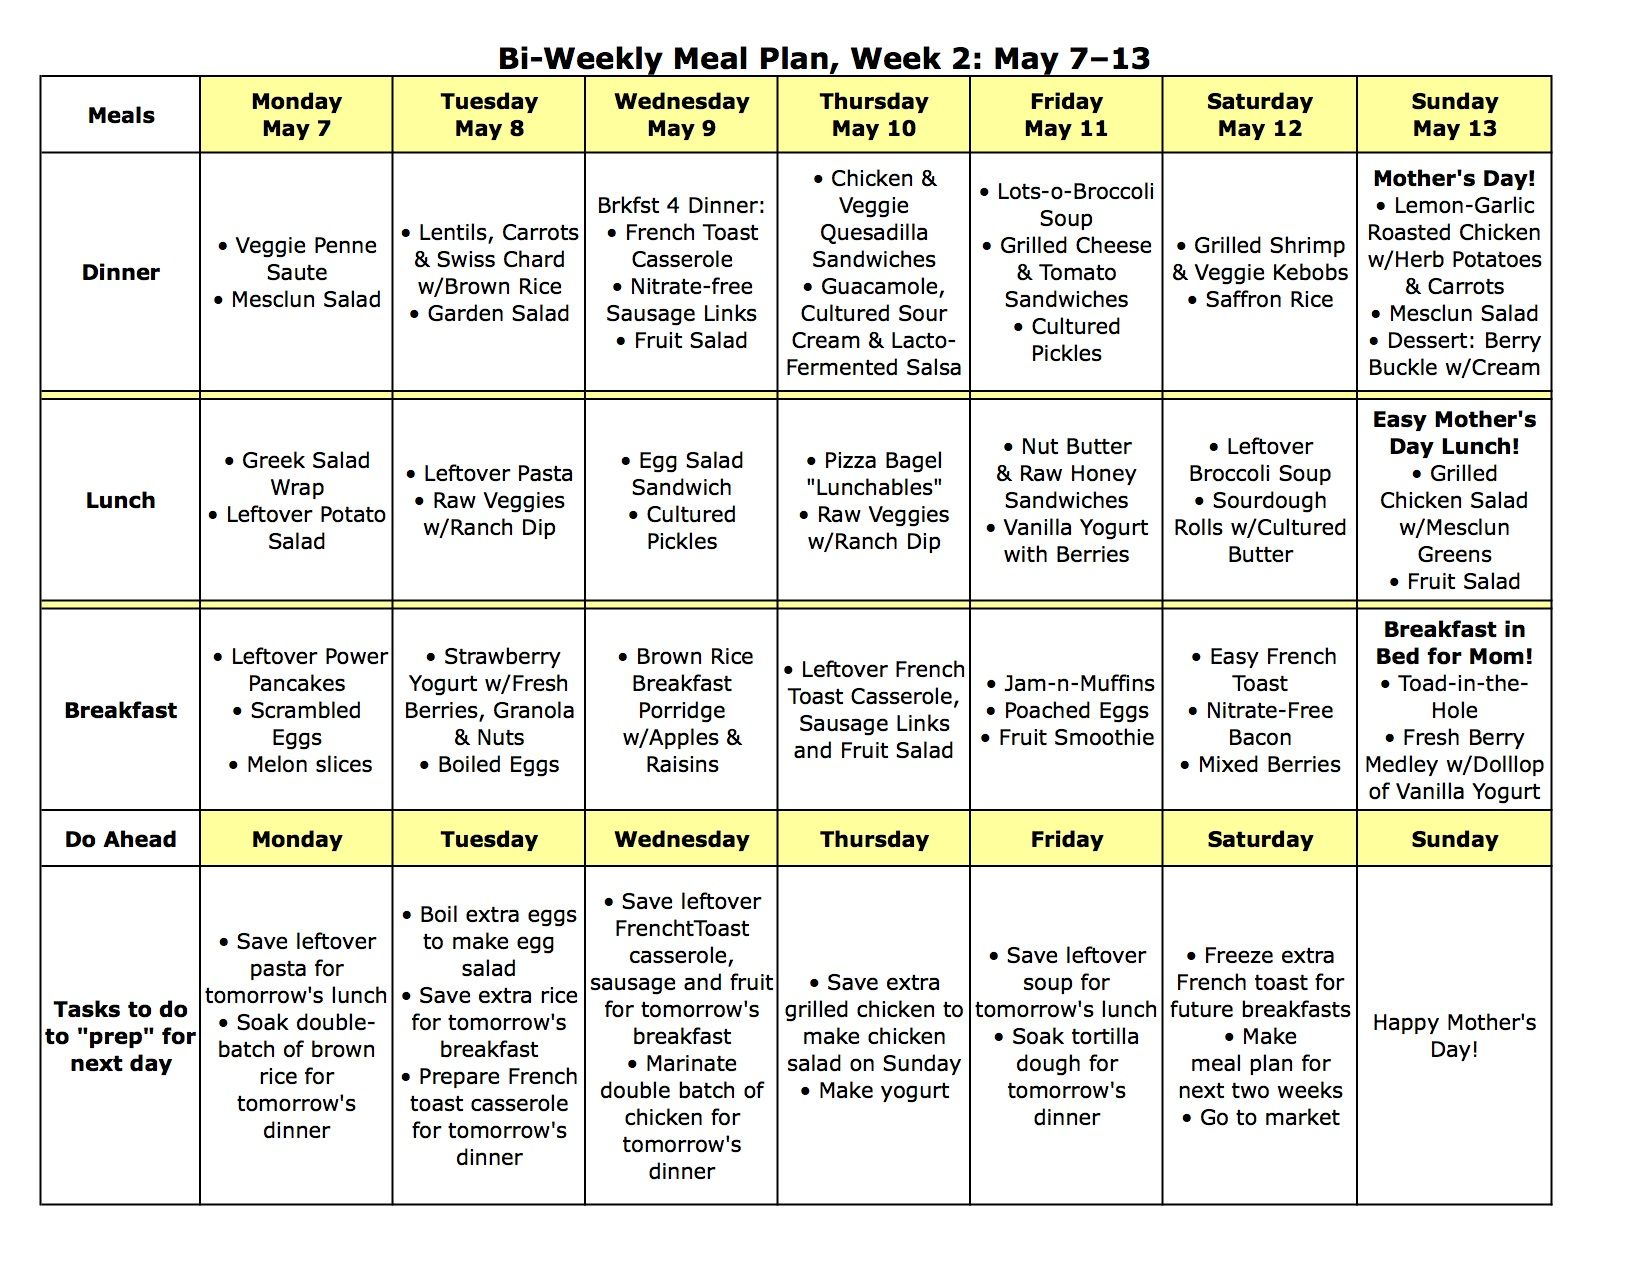 meal plan template | Bi-Weekly Meal Plan for April 30 – May 13 ...